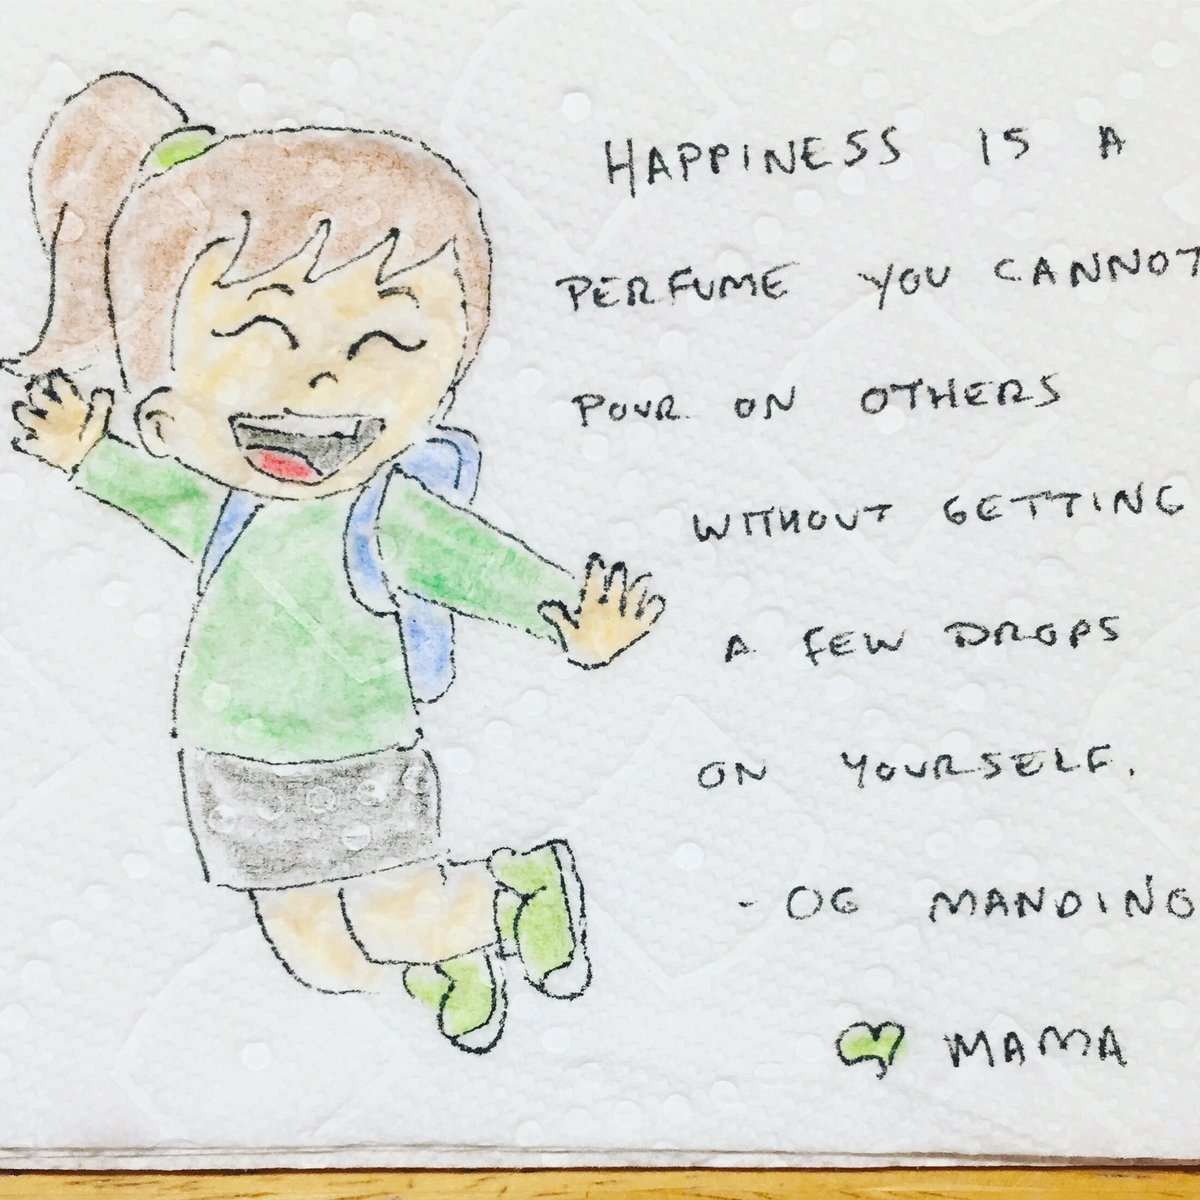 Happiness is a perfume you cannot pour on others without getting a few drops on yourself. 🤗 - Og Mandino   #happiness #spreadjoy #happinessquotes #ogmandino #ogmandinoquotes https://t.co/Yy1CVcPY1T